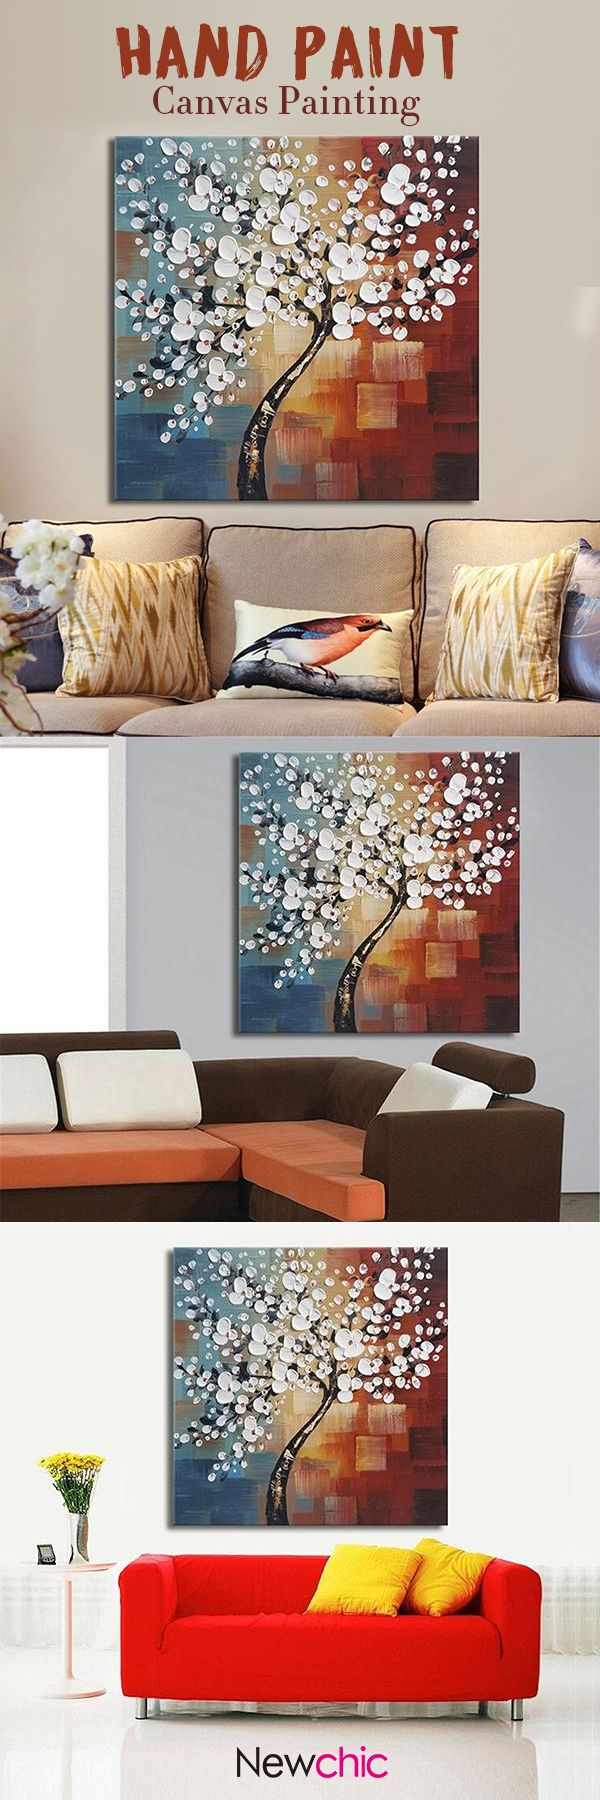 US$8.00  Framed Hand Paint Canvas Painting Home Decor Wall Art Abstract  Flower Tree Decoration#newchic#homedecor | Pinterest | Hand Painted Canvas,  ...